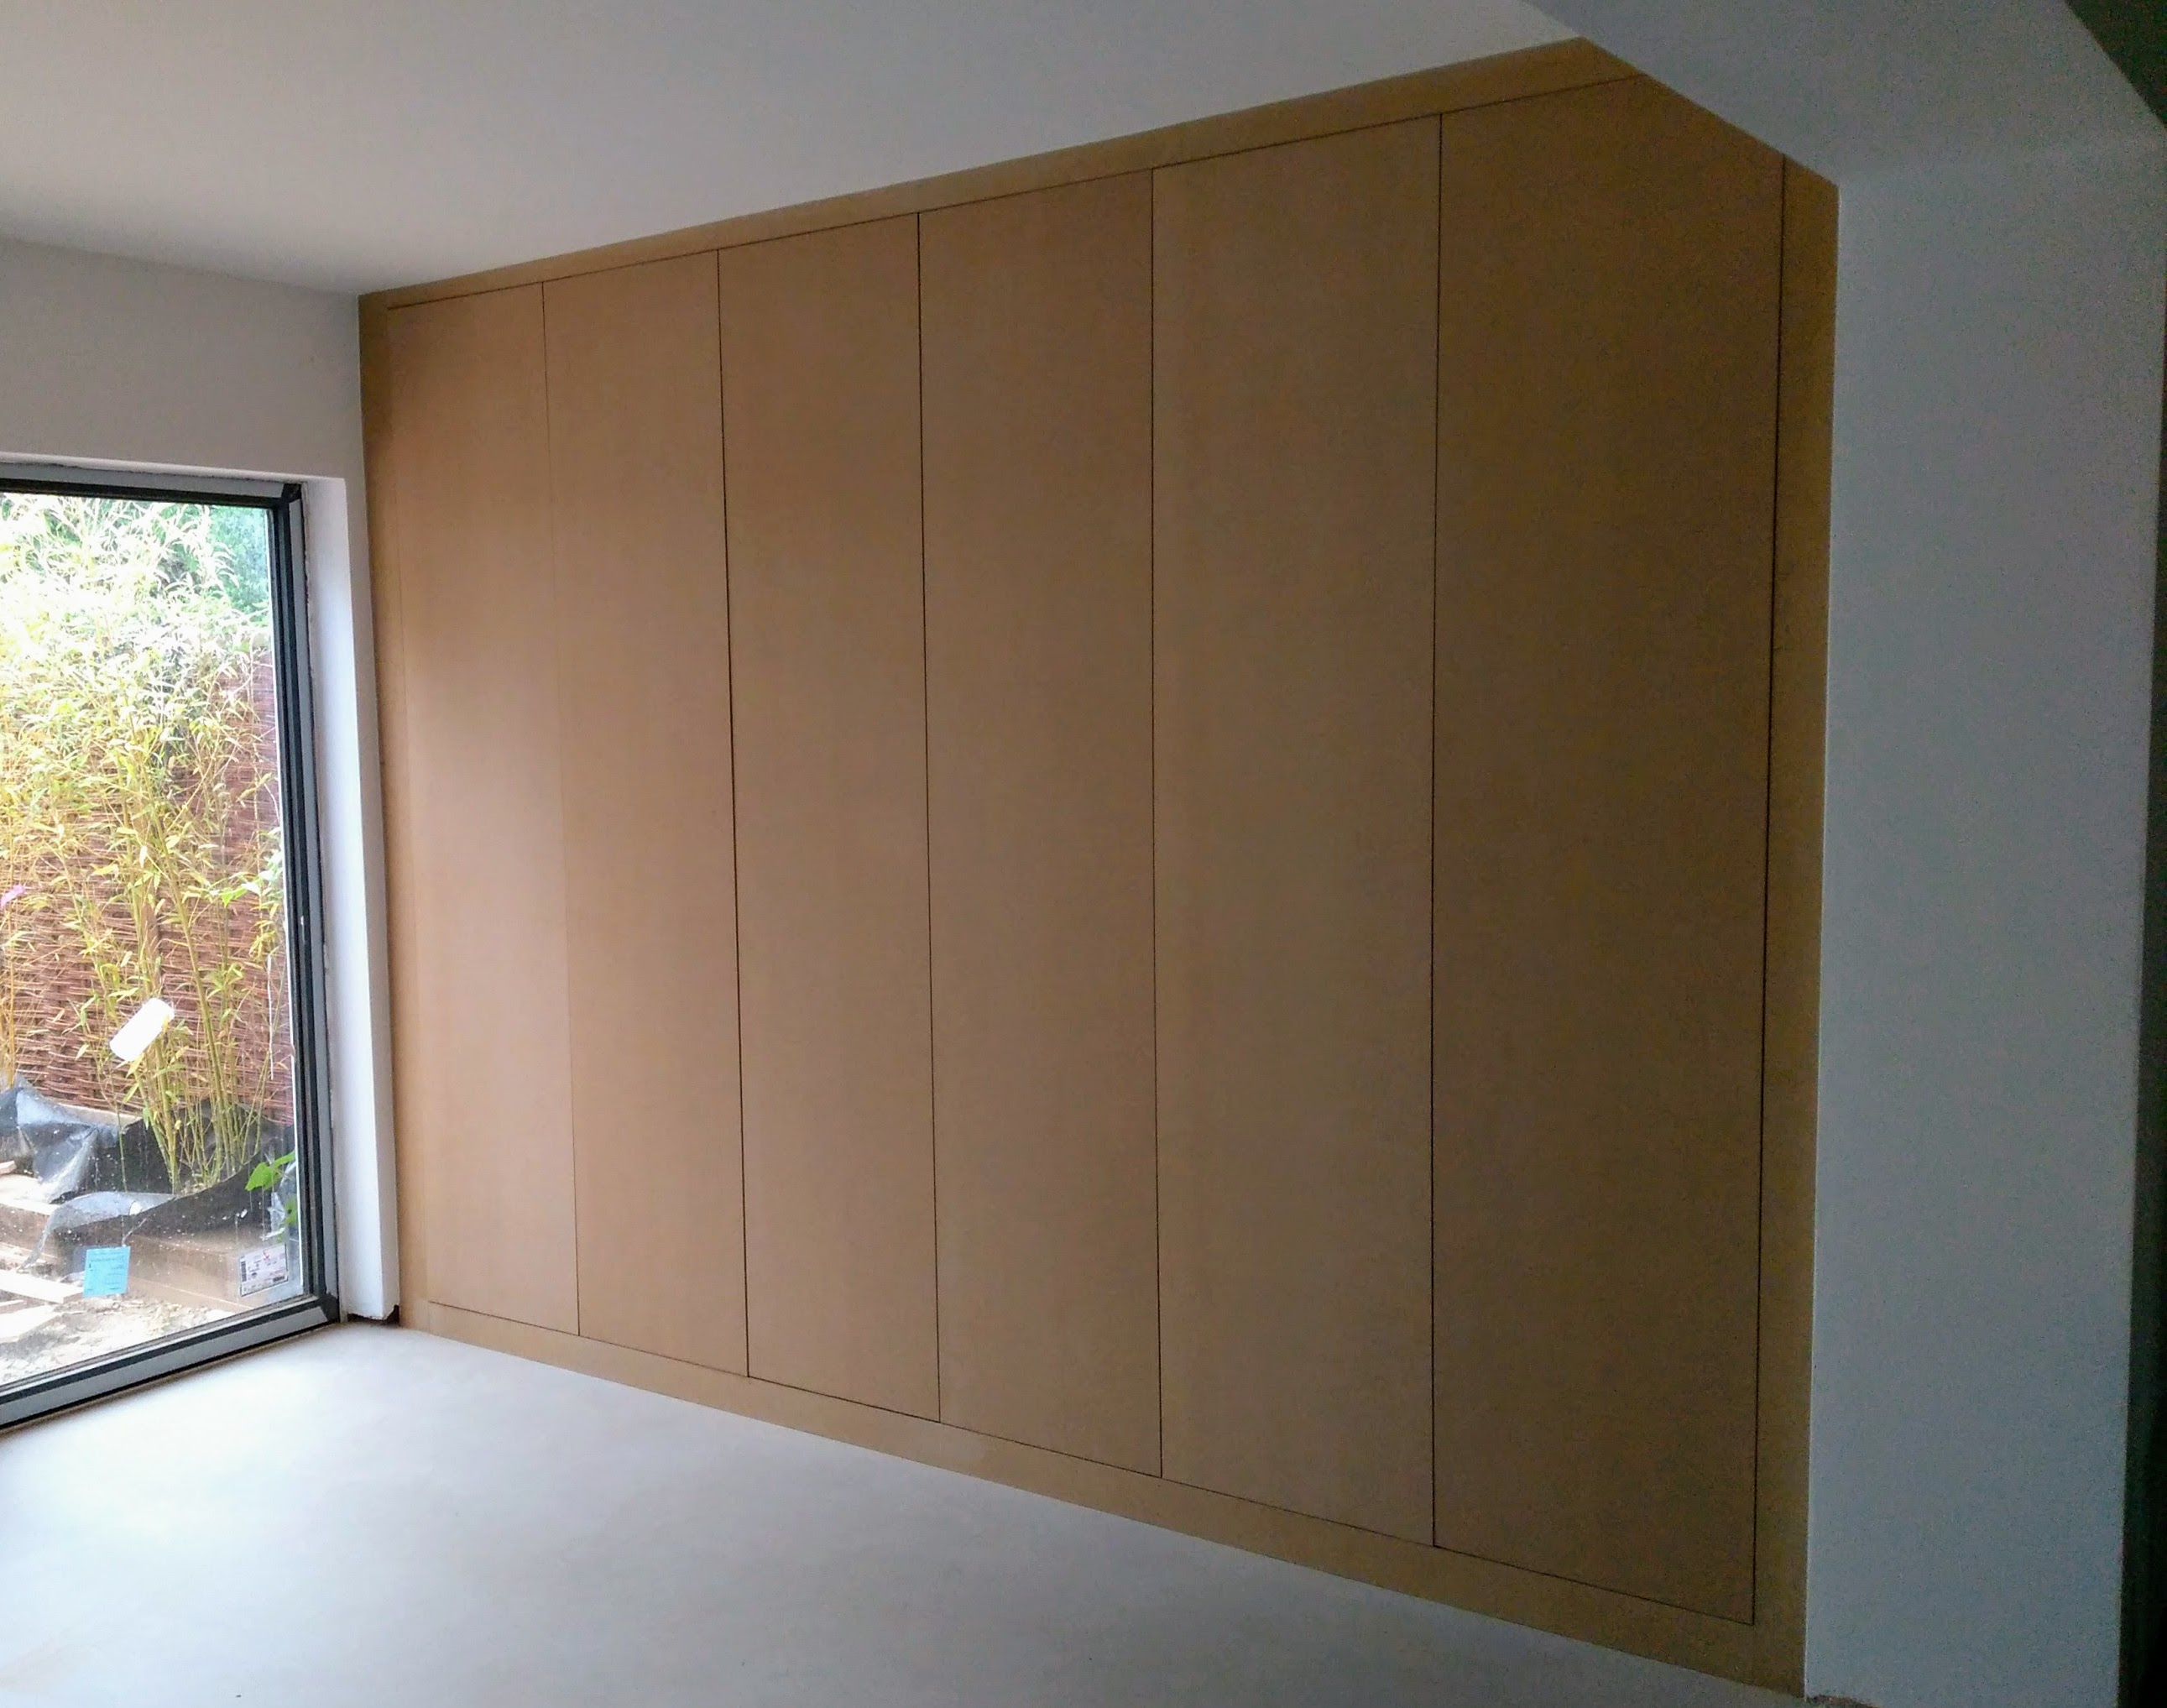 Lounge cupboards (MDF - pre-painted)